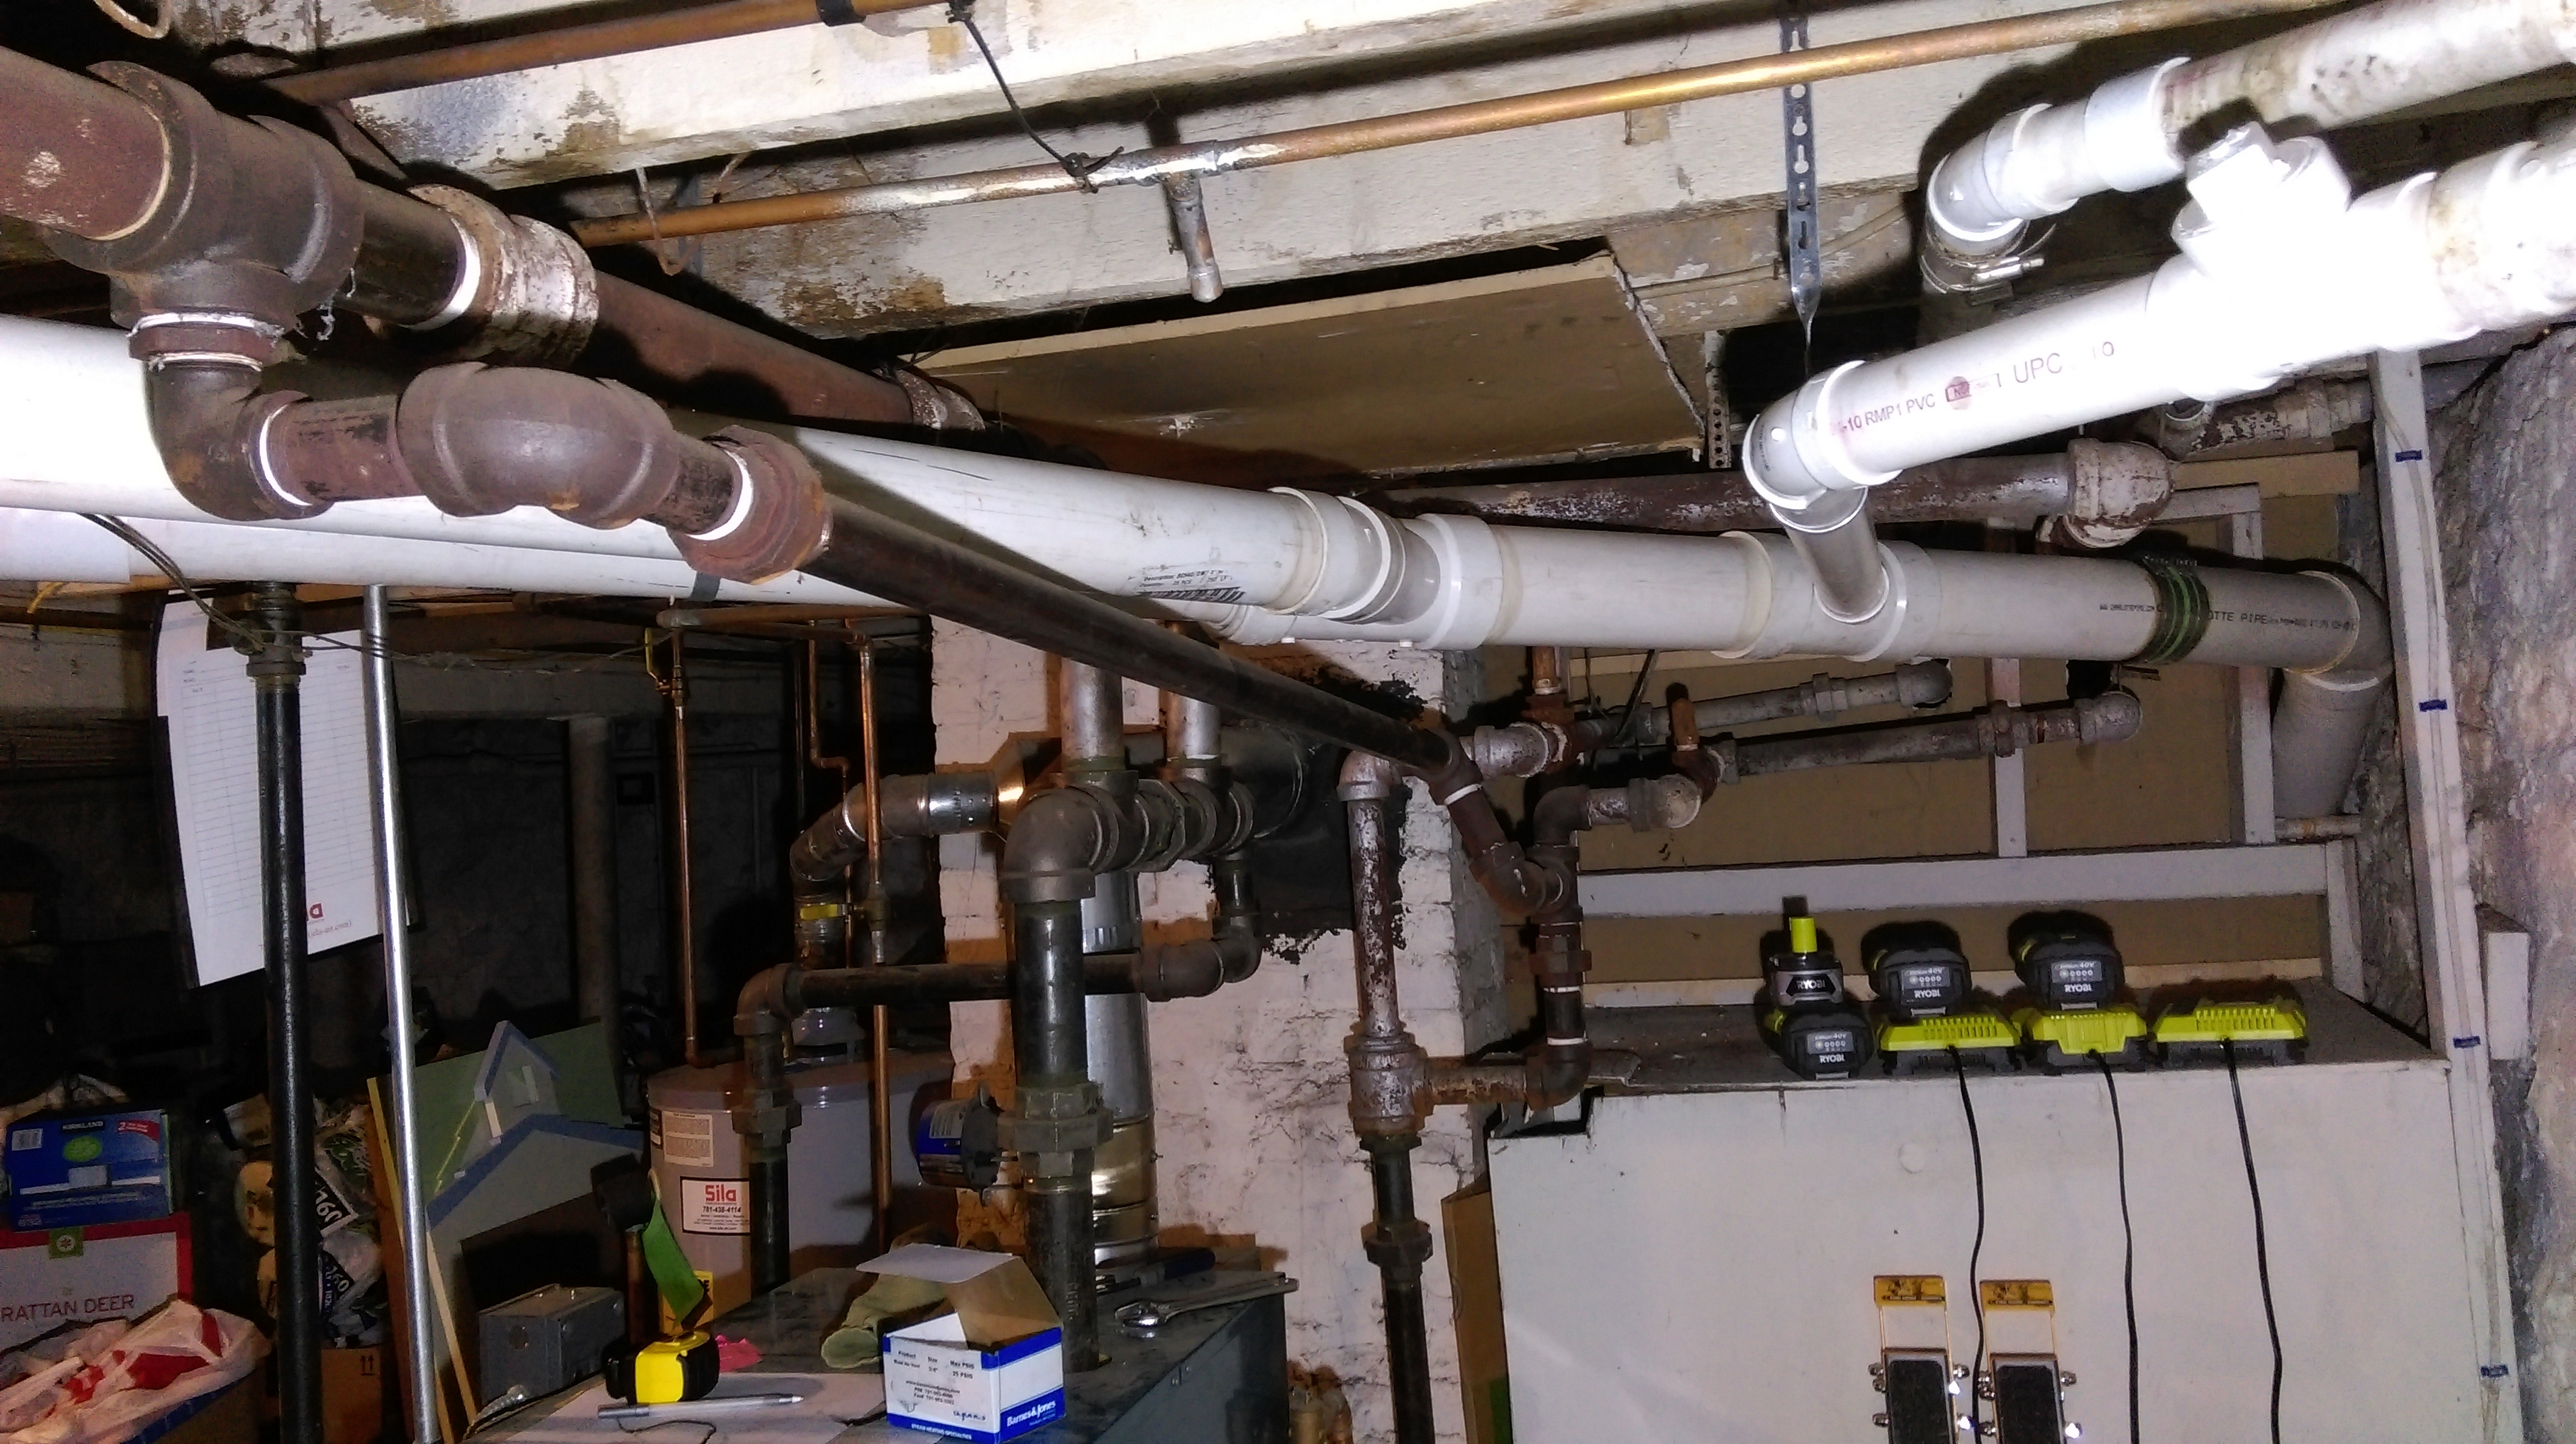 Should This Pipe Be Attached To The Main Steam And Vent Electrical Wiring Pipes 1